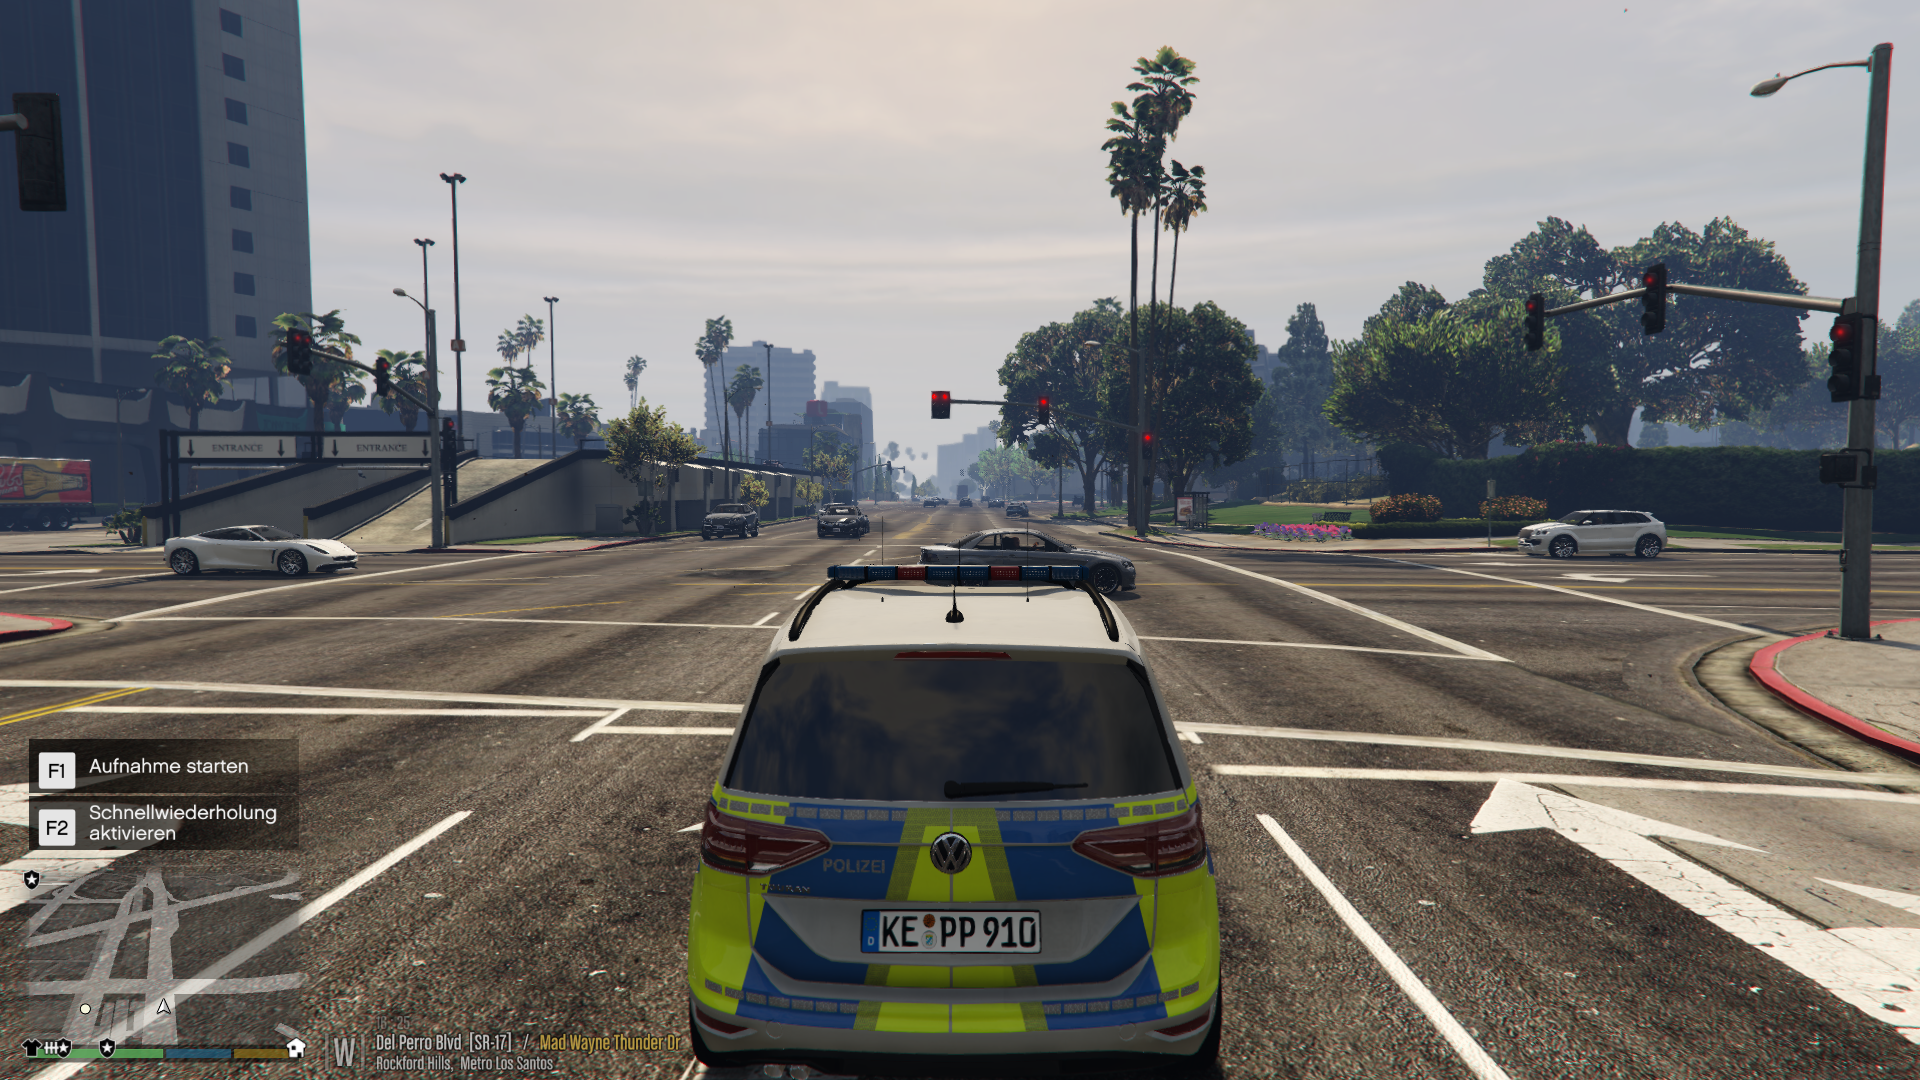 https://www.gameshots.eu/images/2019/08/27/Grand-Theft-Auto-V-Screenshot-2019.08.08---16.52.13.24.png